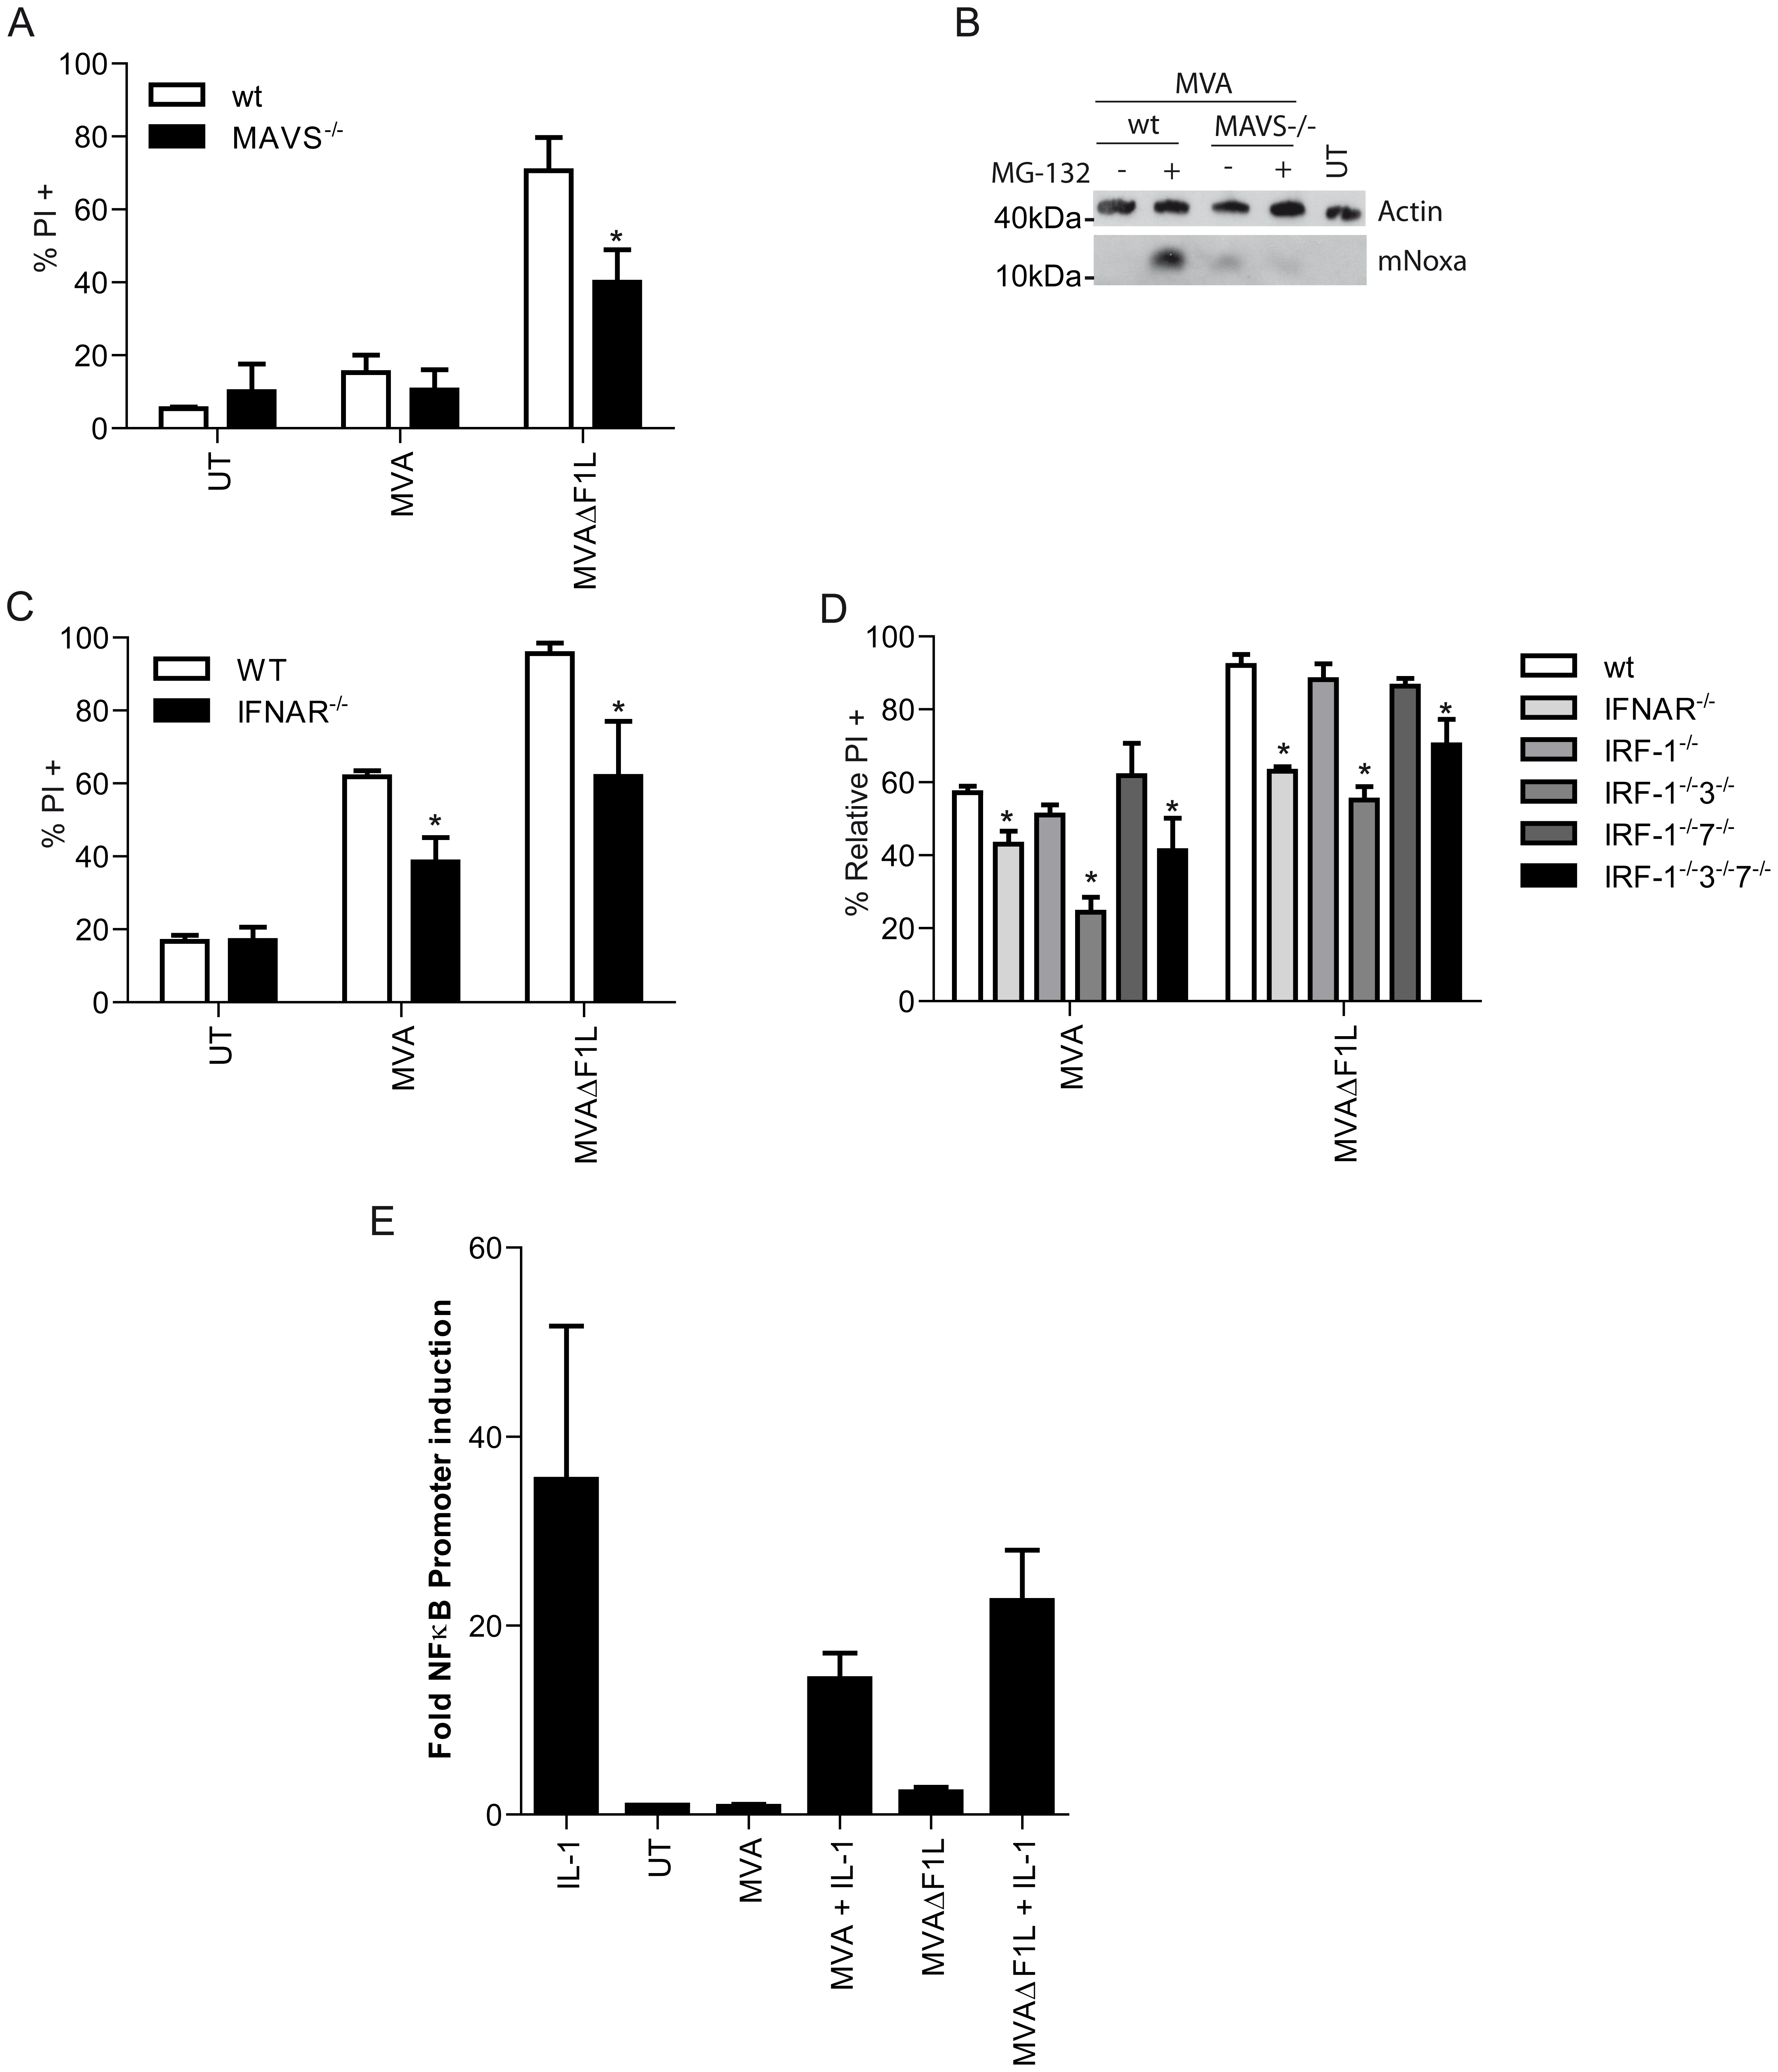 IRF3 induced activation of Noxa is dependent on MAVS and IFN-I-signaling.